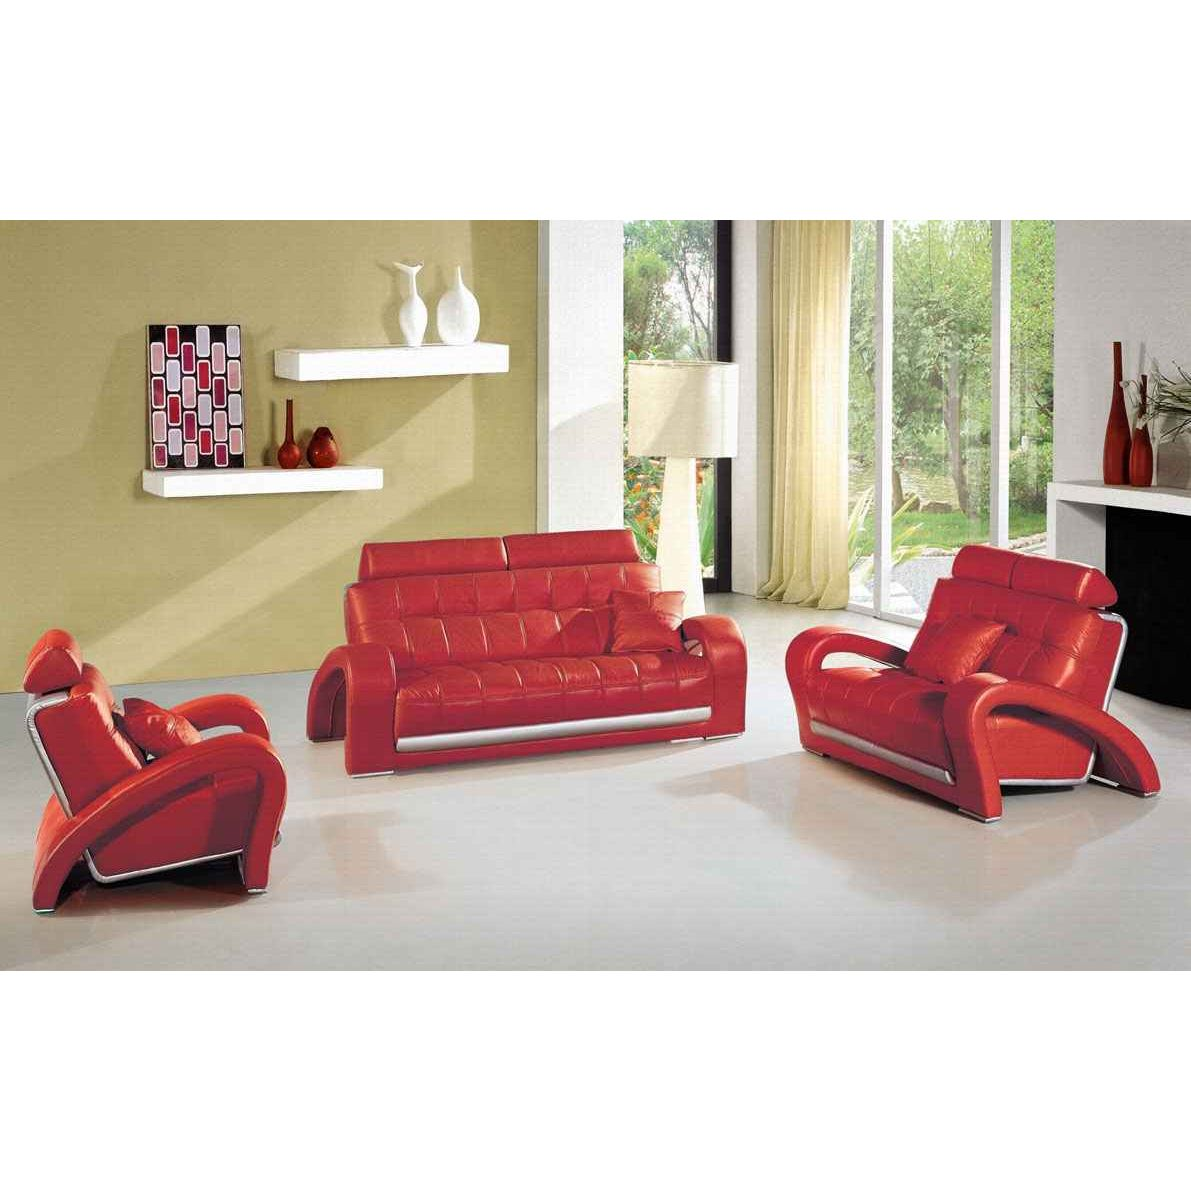 deco in paris canape cuir rouge 3 places verdi can verdi 3p pu rouge. Black Bedroom Furniture Sets. Home Design Ideas